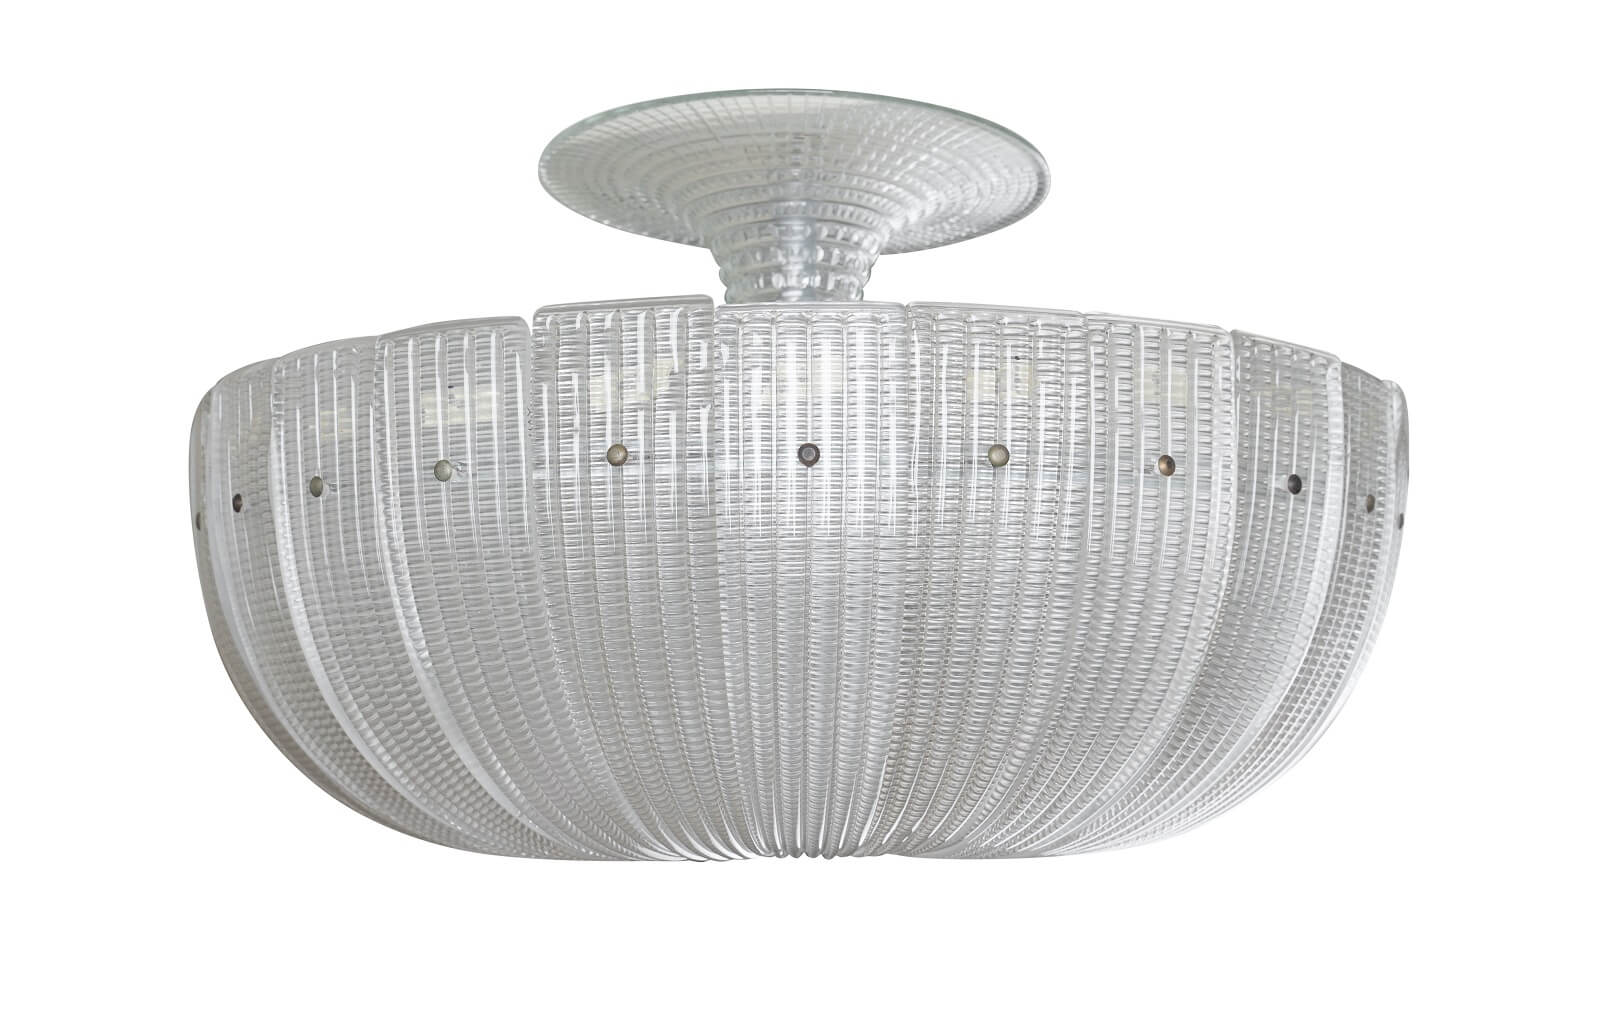 Ceiling lamp mod. 5305 by Venini for sale